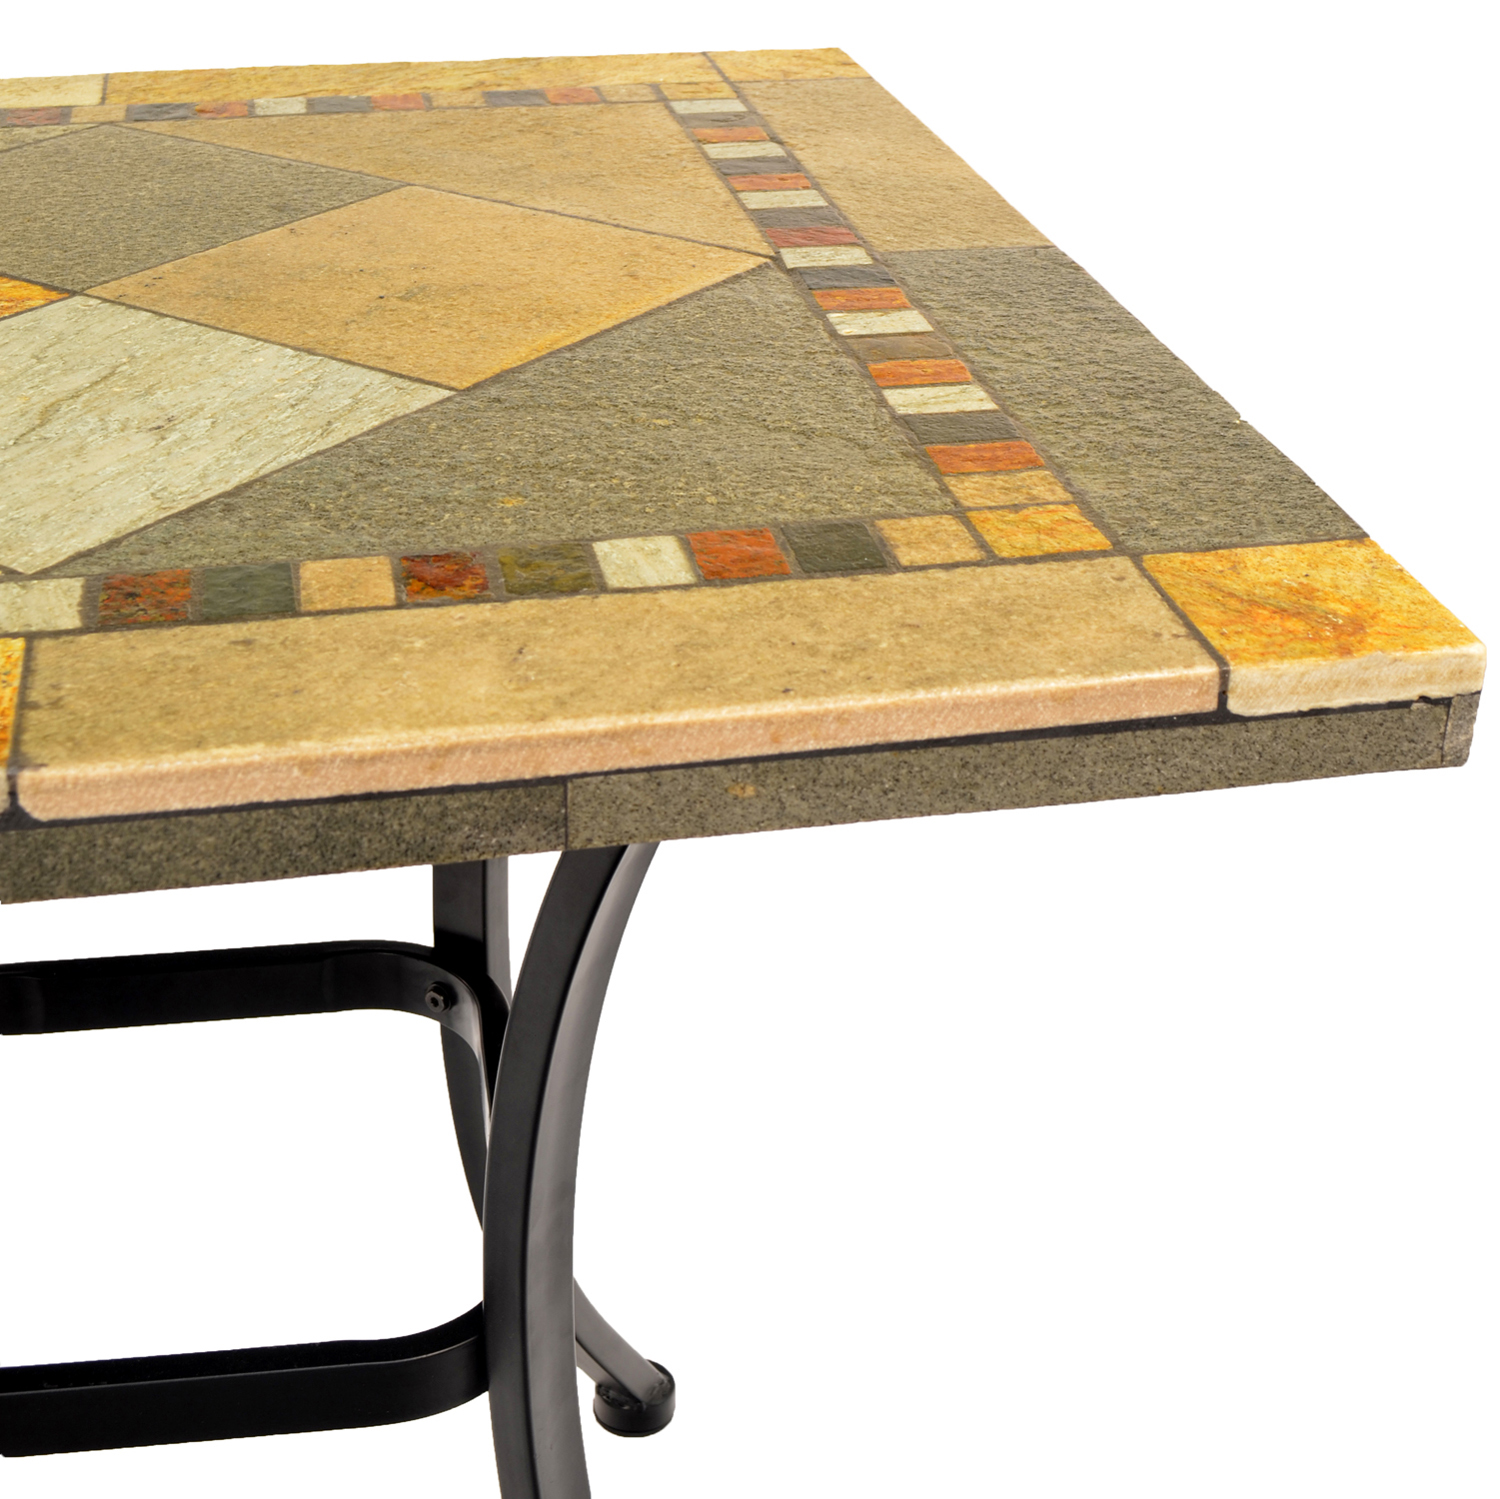 Vinaros table